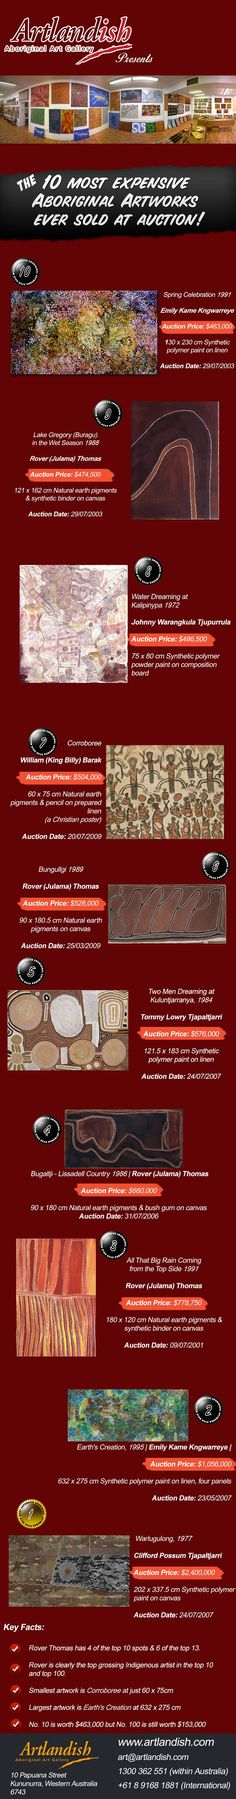 10 most expensive Aboriginal Artworks ever sold at auction Infographic